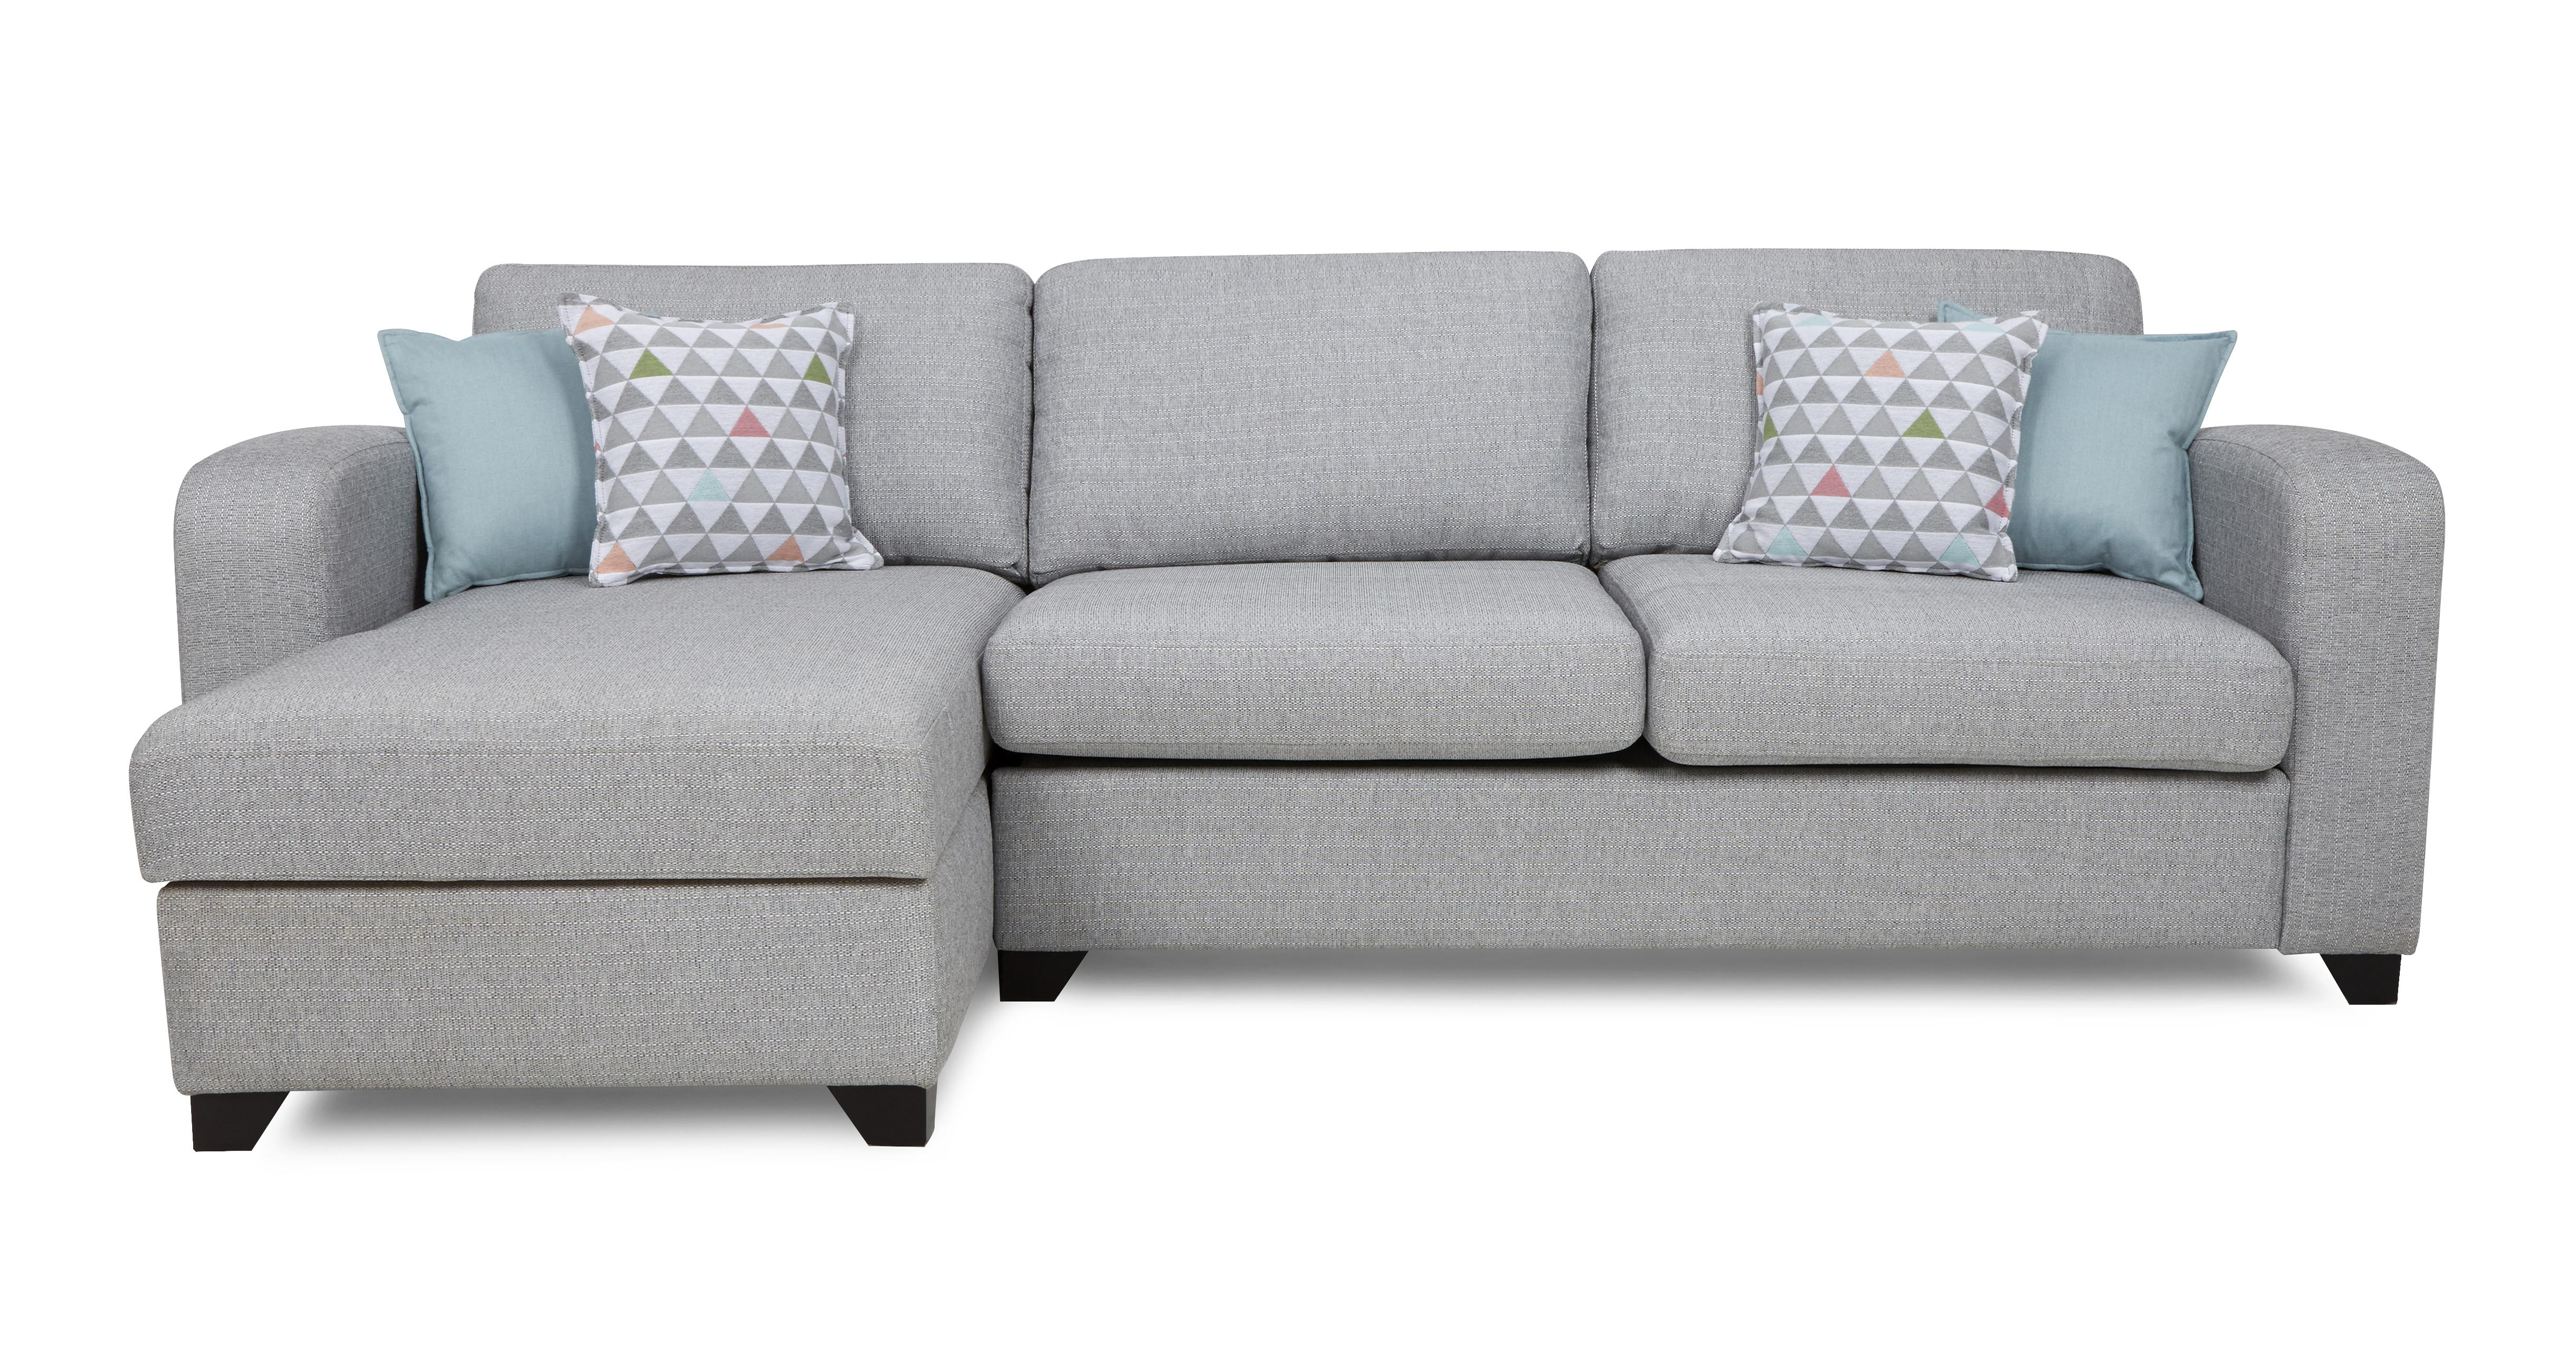 How To Dismantle Dfs Sofa Bed Review Home Co